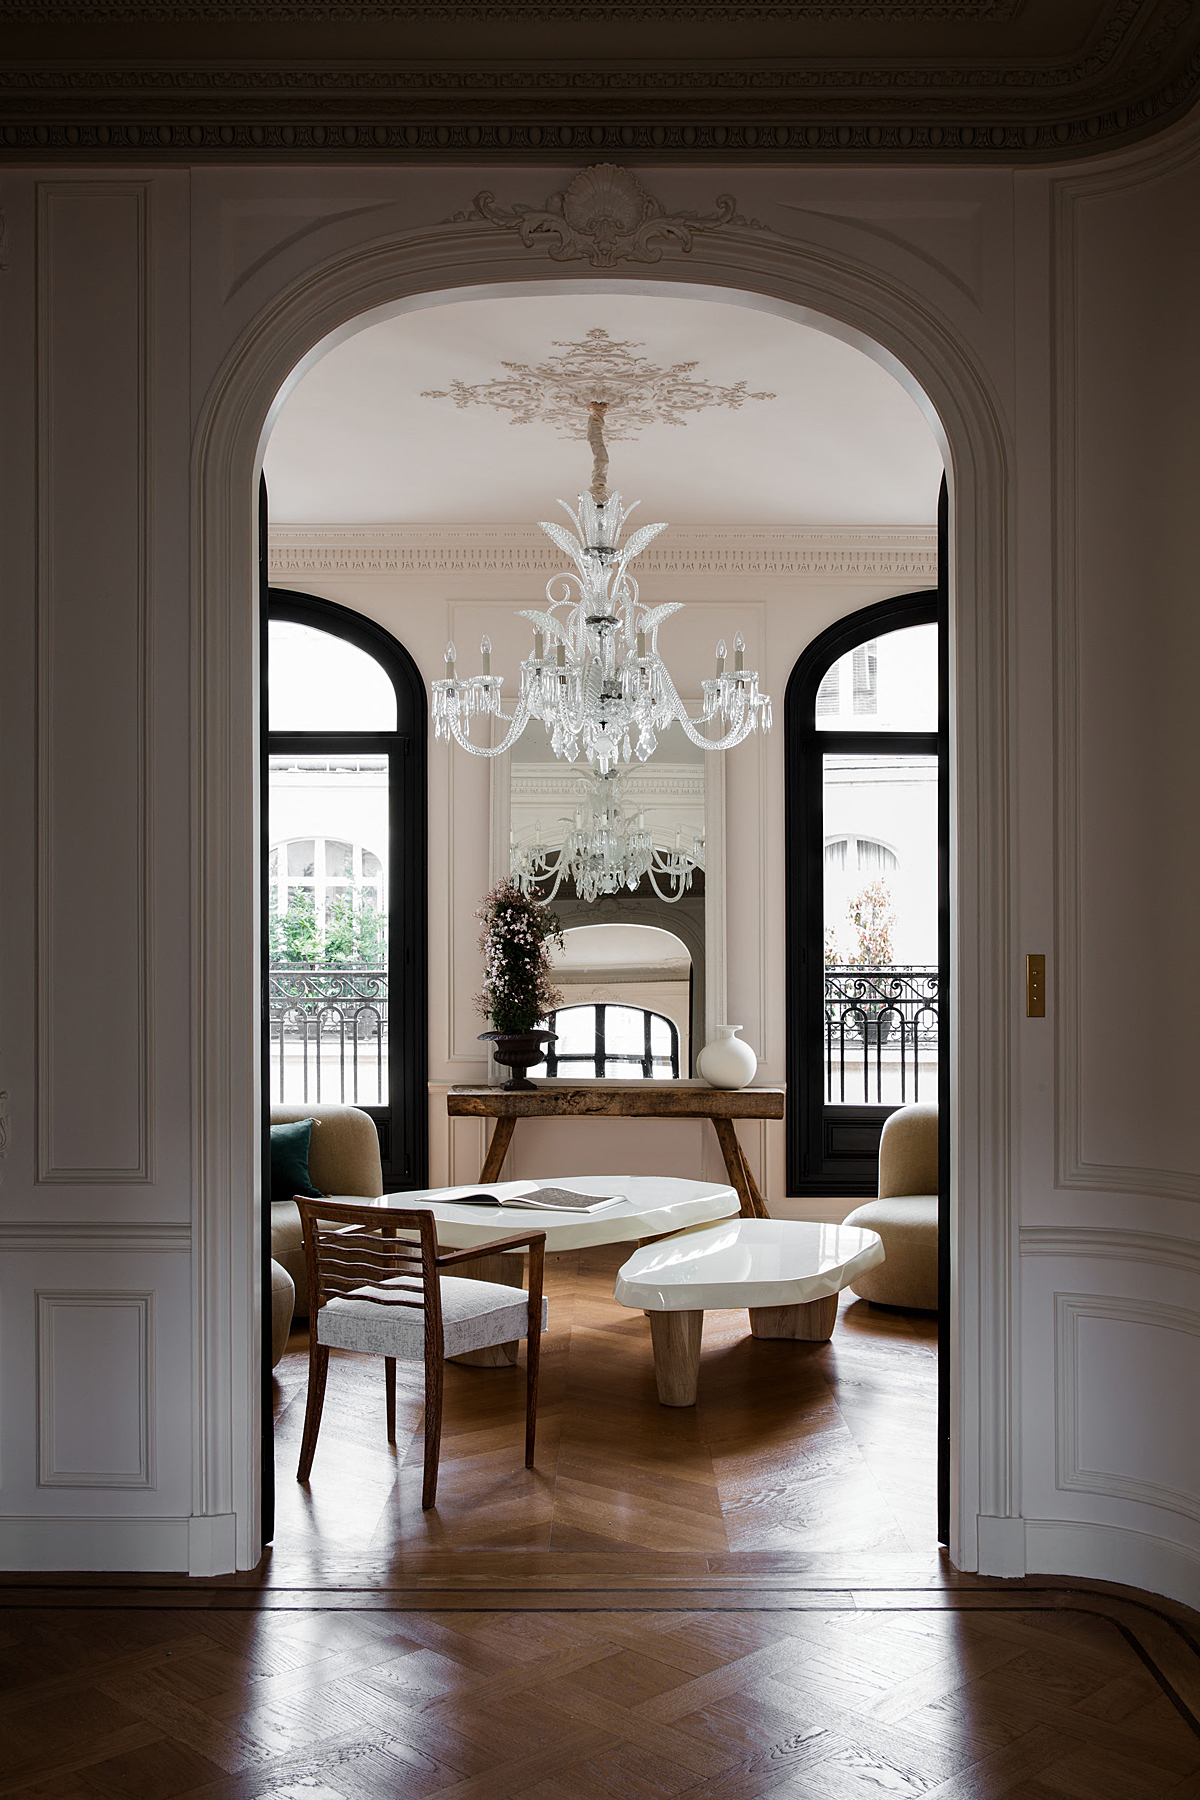 Décor Inspiration: A Paris Apartment by Christina Cole and Co.